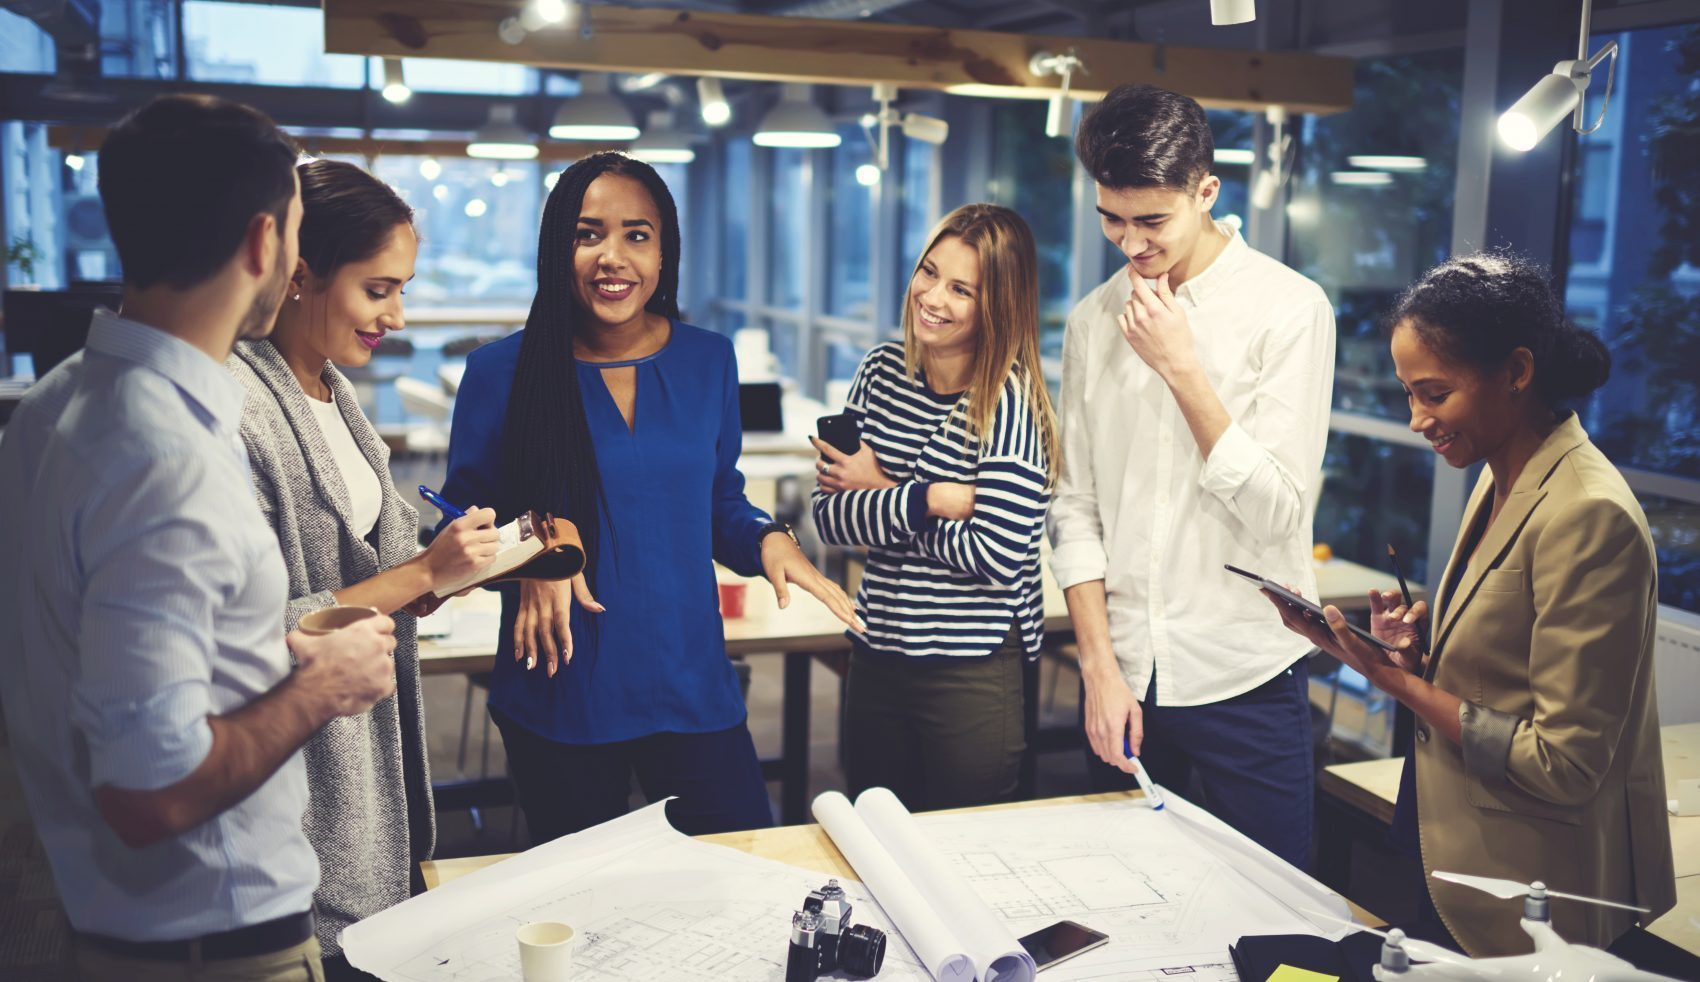 Employee recognition and rewards that work best for a multi-cultural workforce